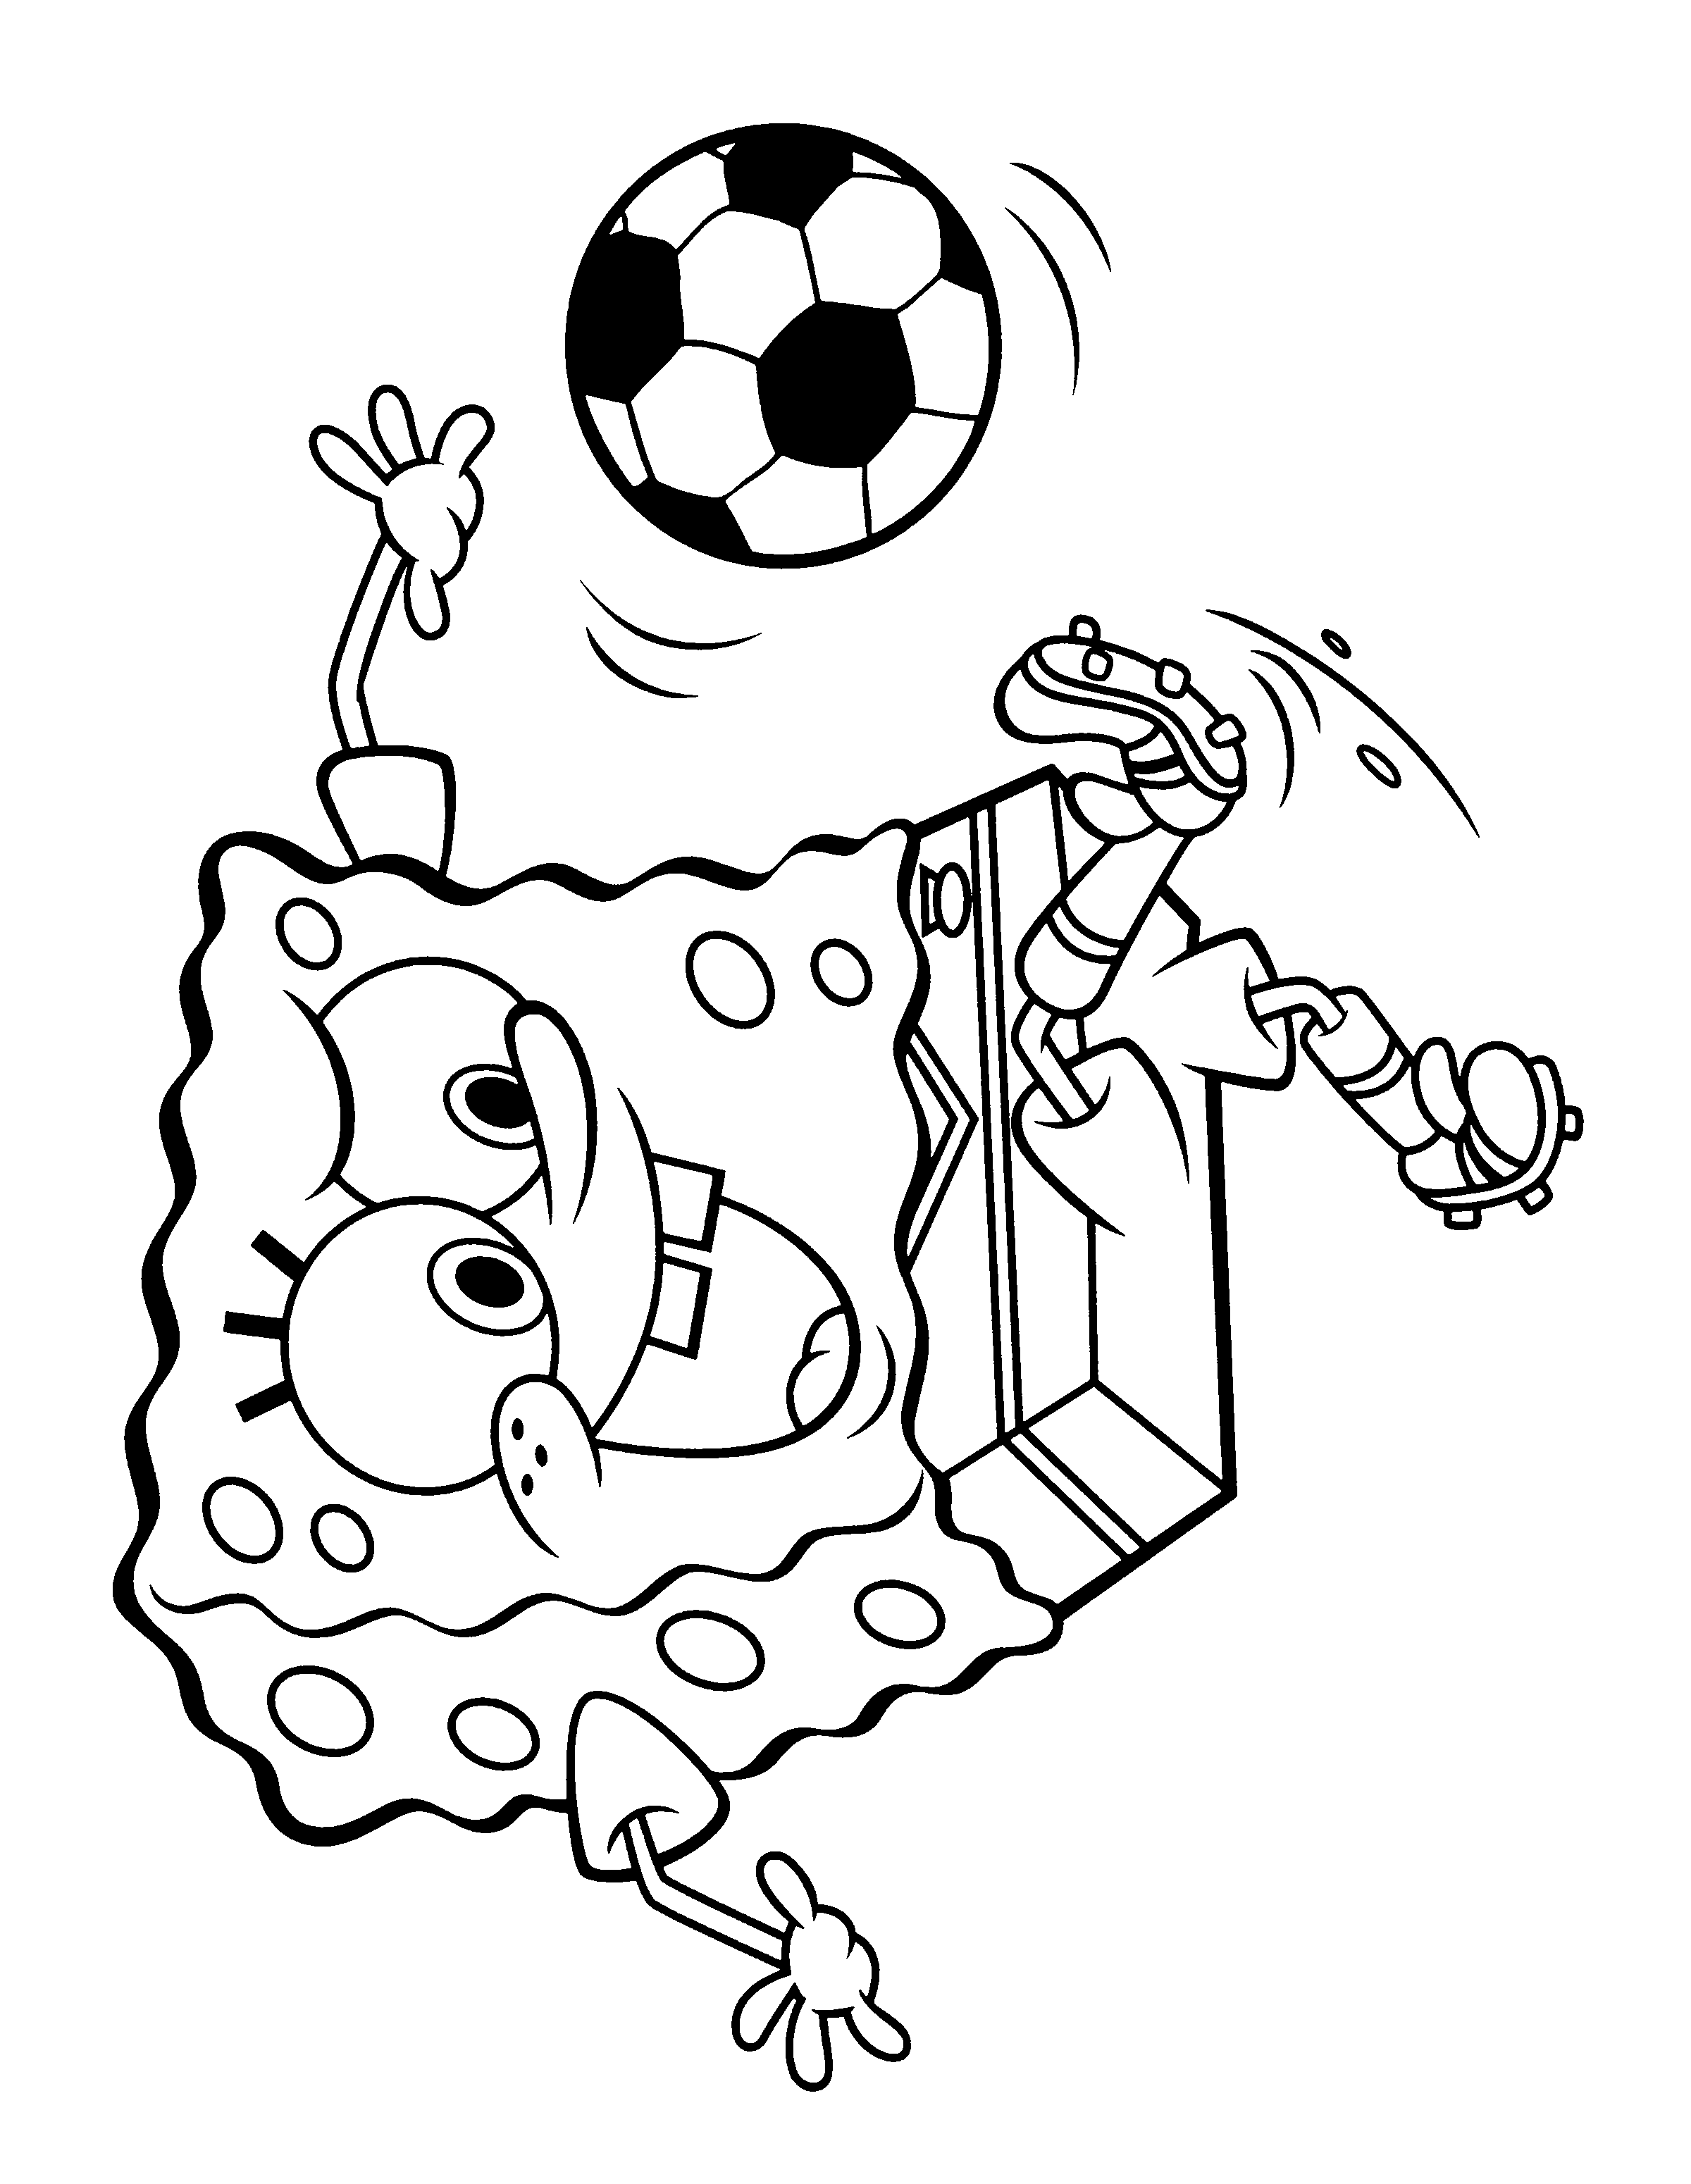 Free Spongebob Movie Coloring Page From All Over The World Animated Football